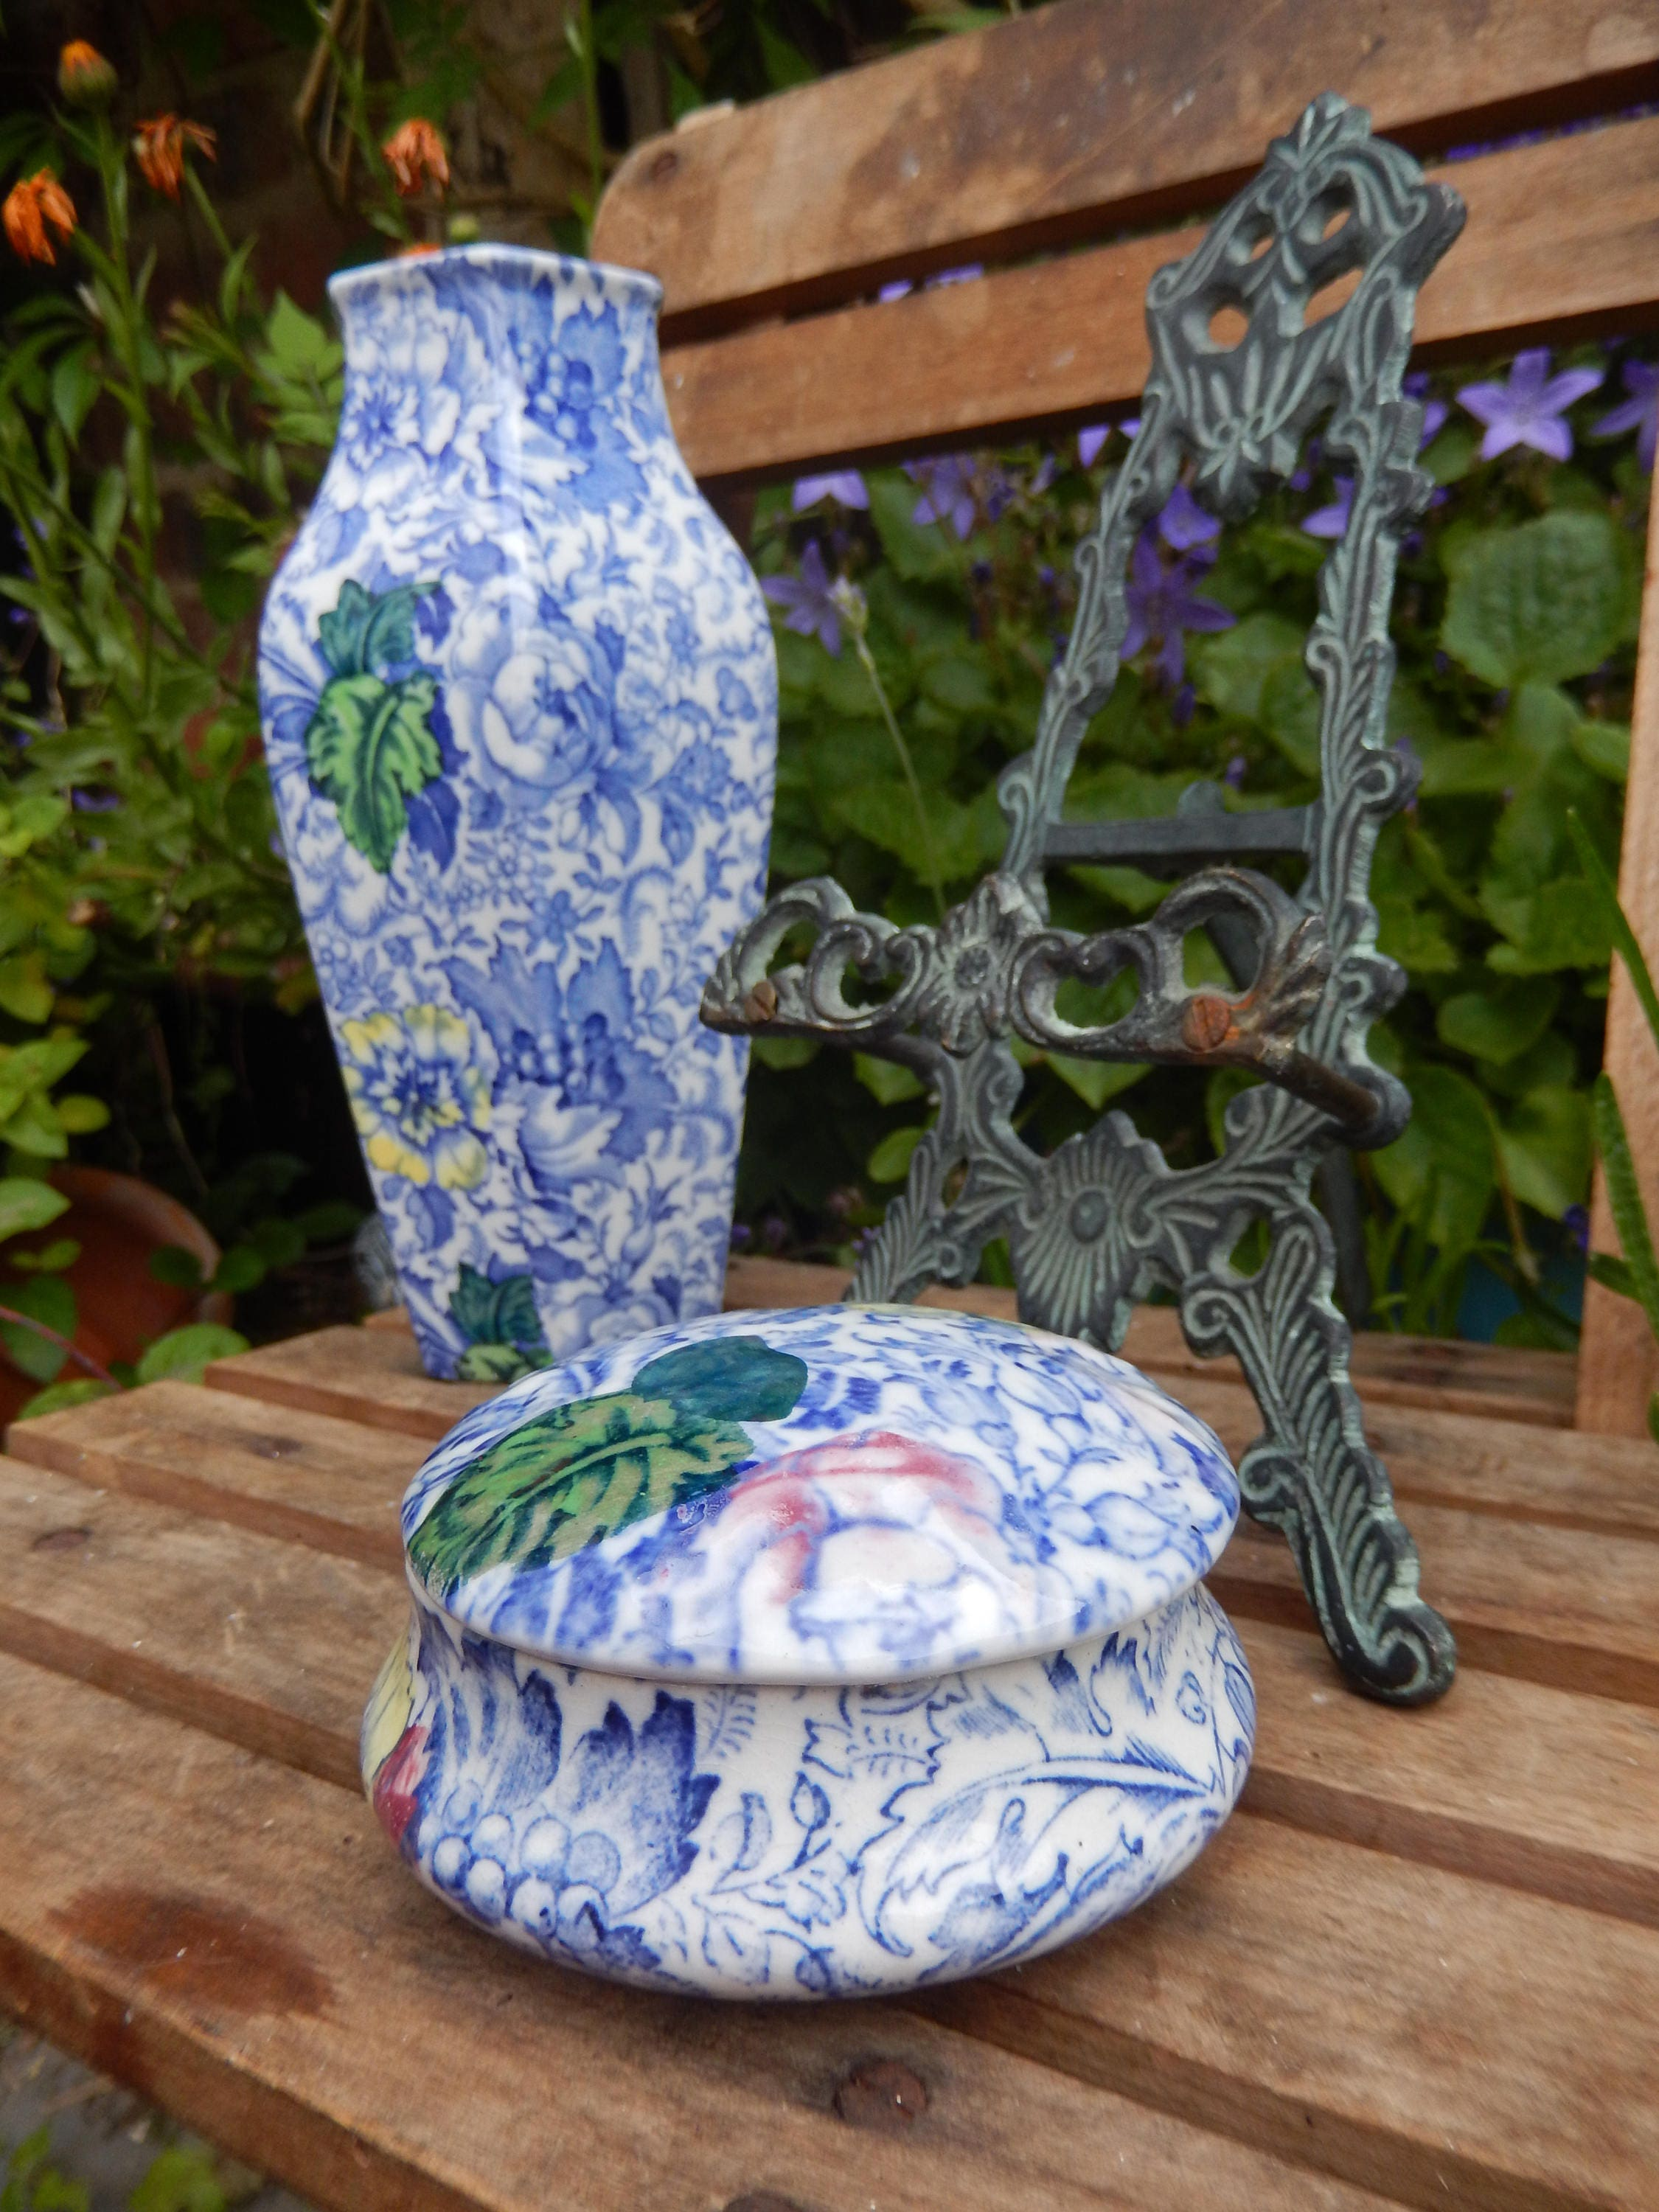 Art Deco Woolworth Brocade Vase and Pin Tray c 192030s Frederick RheadDesigner  Blue Chintz Ceramics Woods of England Country Cottage